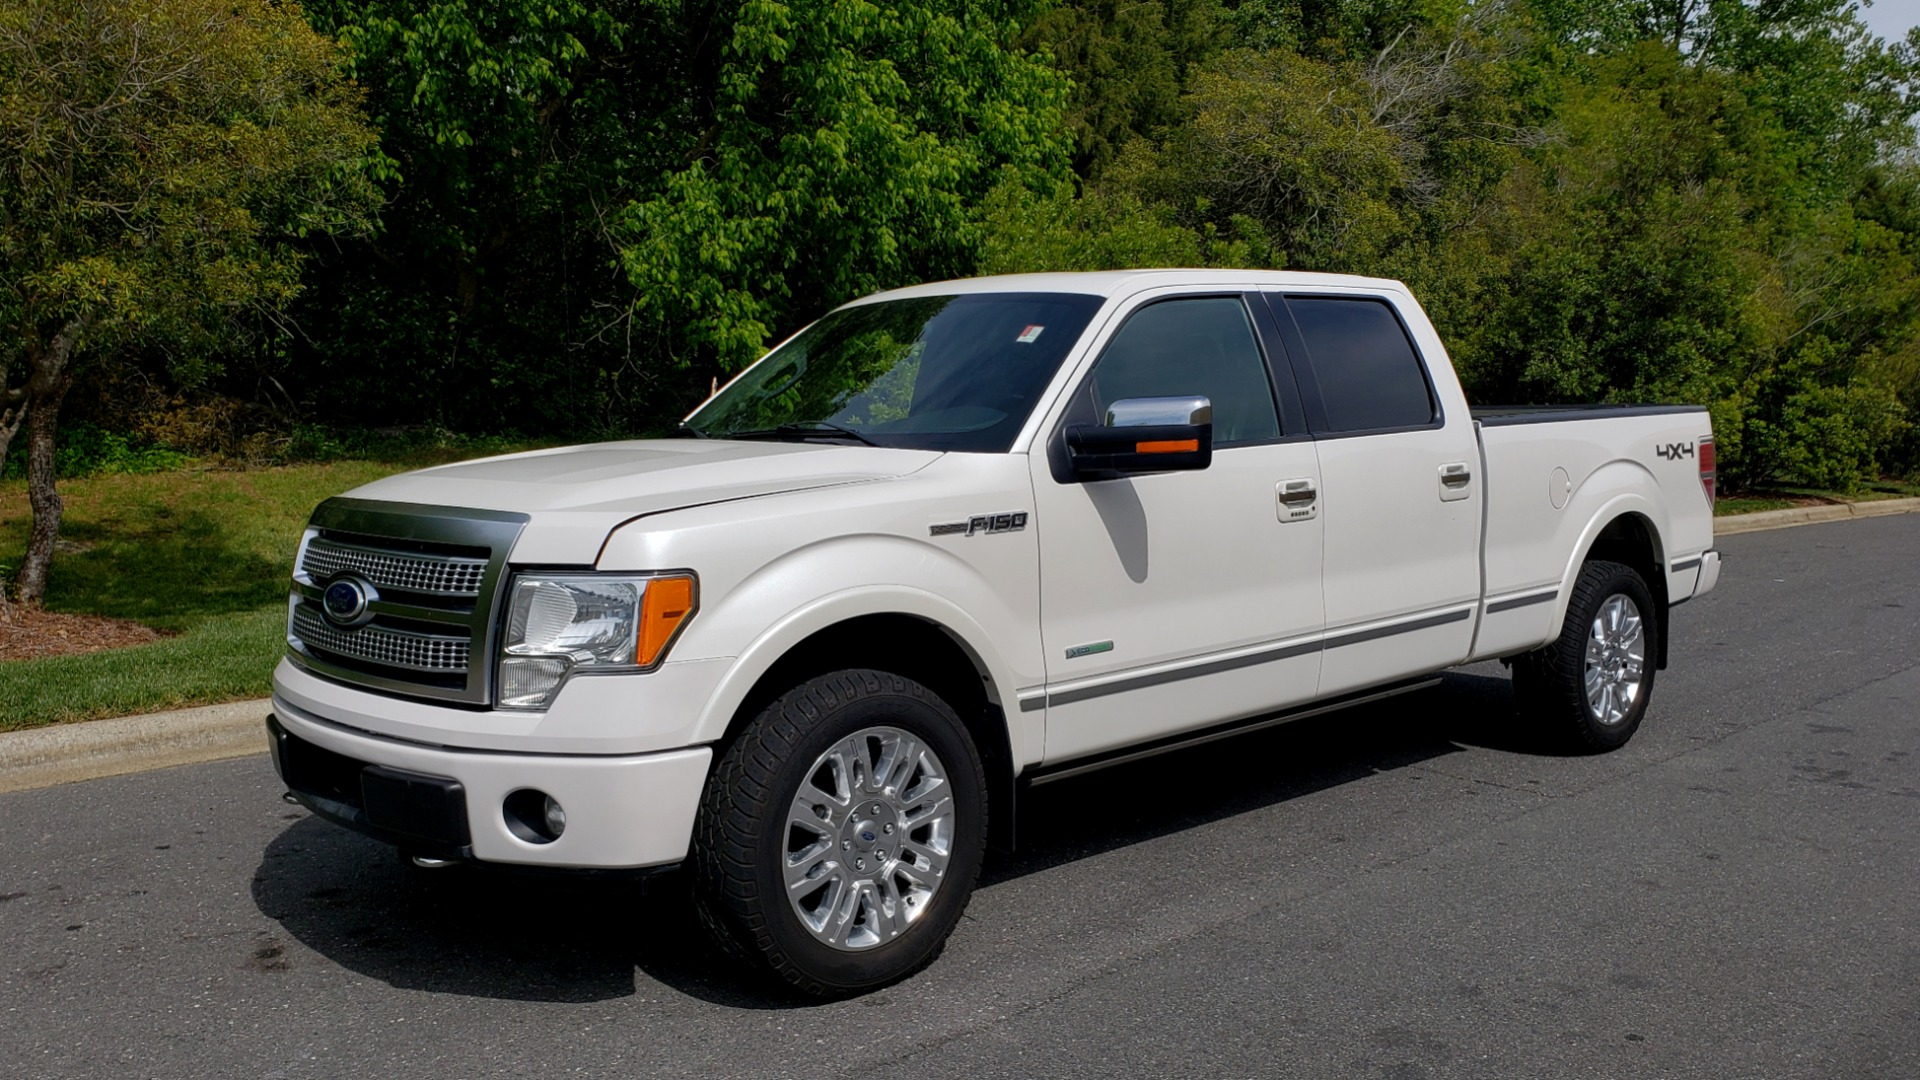 Used 2011 Ford F-150 PLATINUM 4X4 SUPERCREW / NAV / SUNROOF / SONY / REARVIEW for sale Sold at Formula Imports in Charlotte NC 28227 1